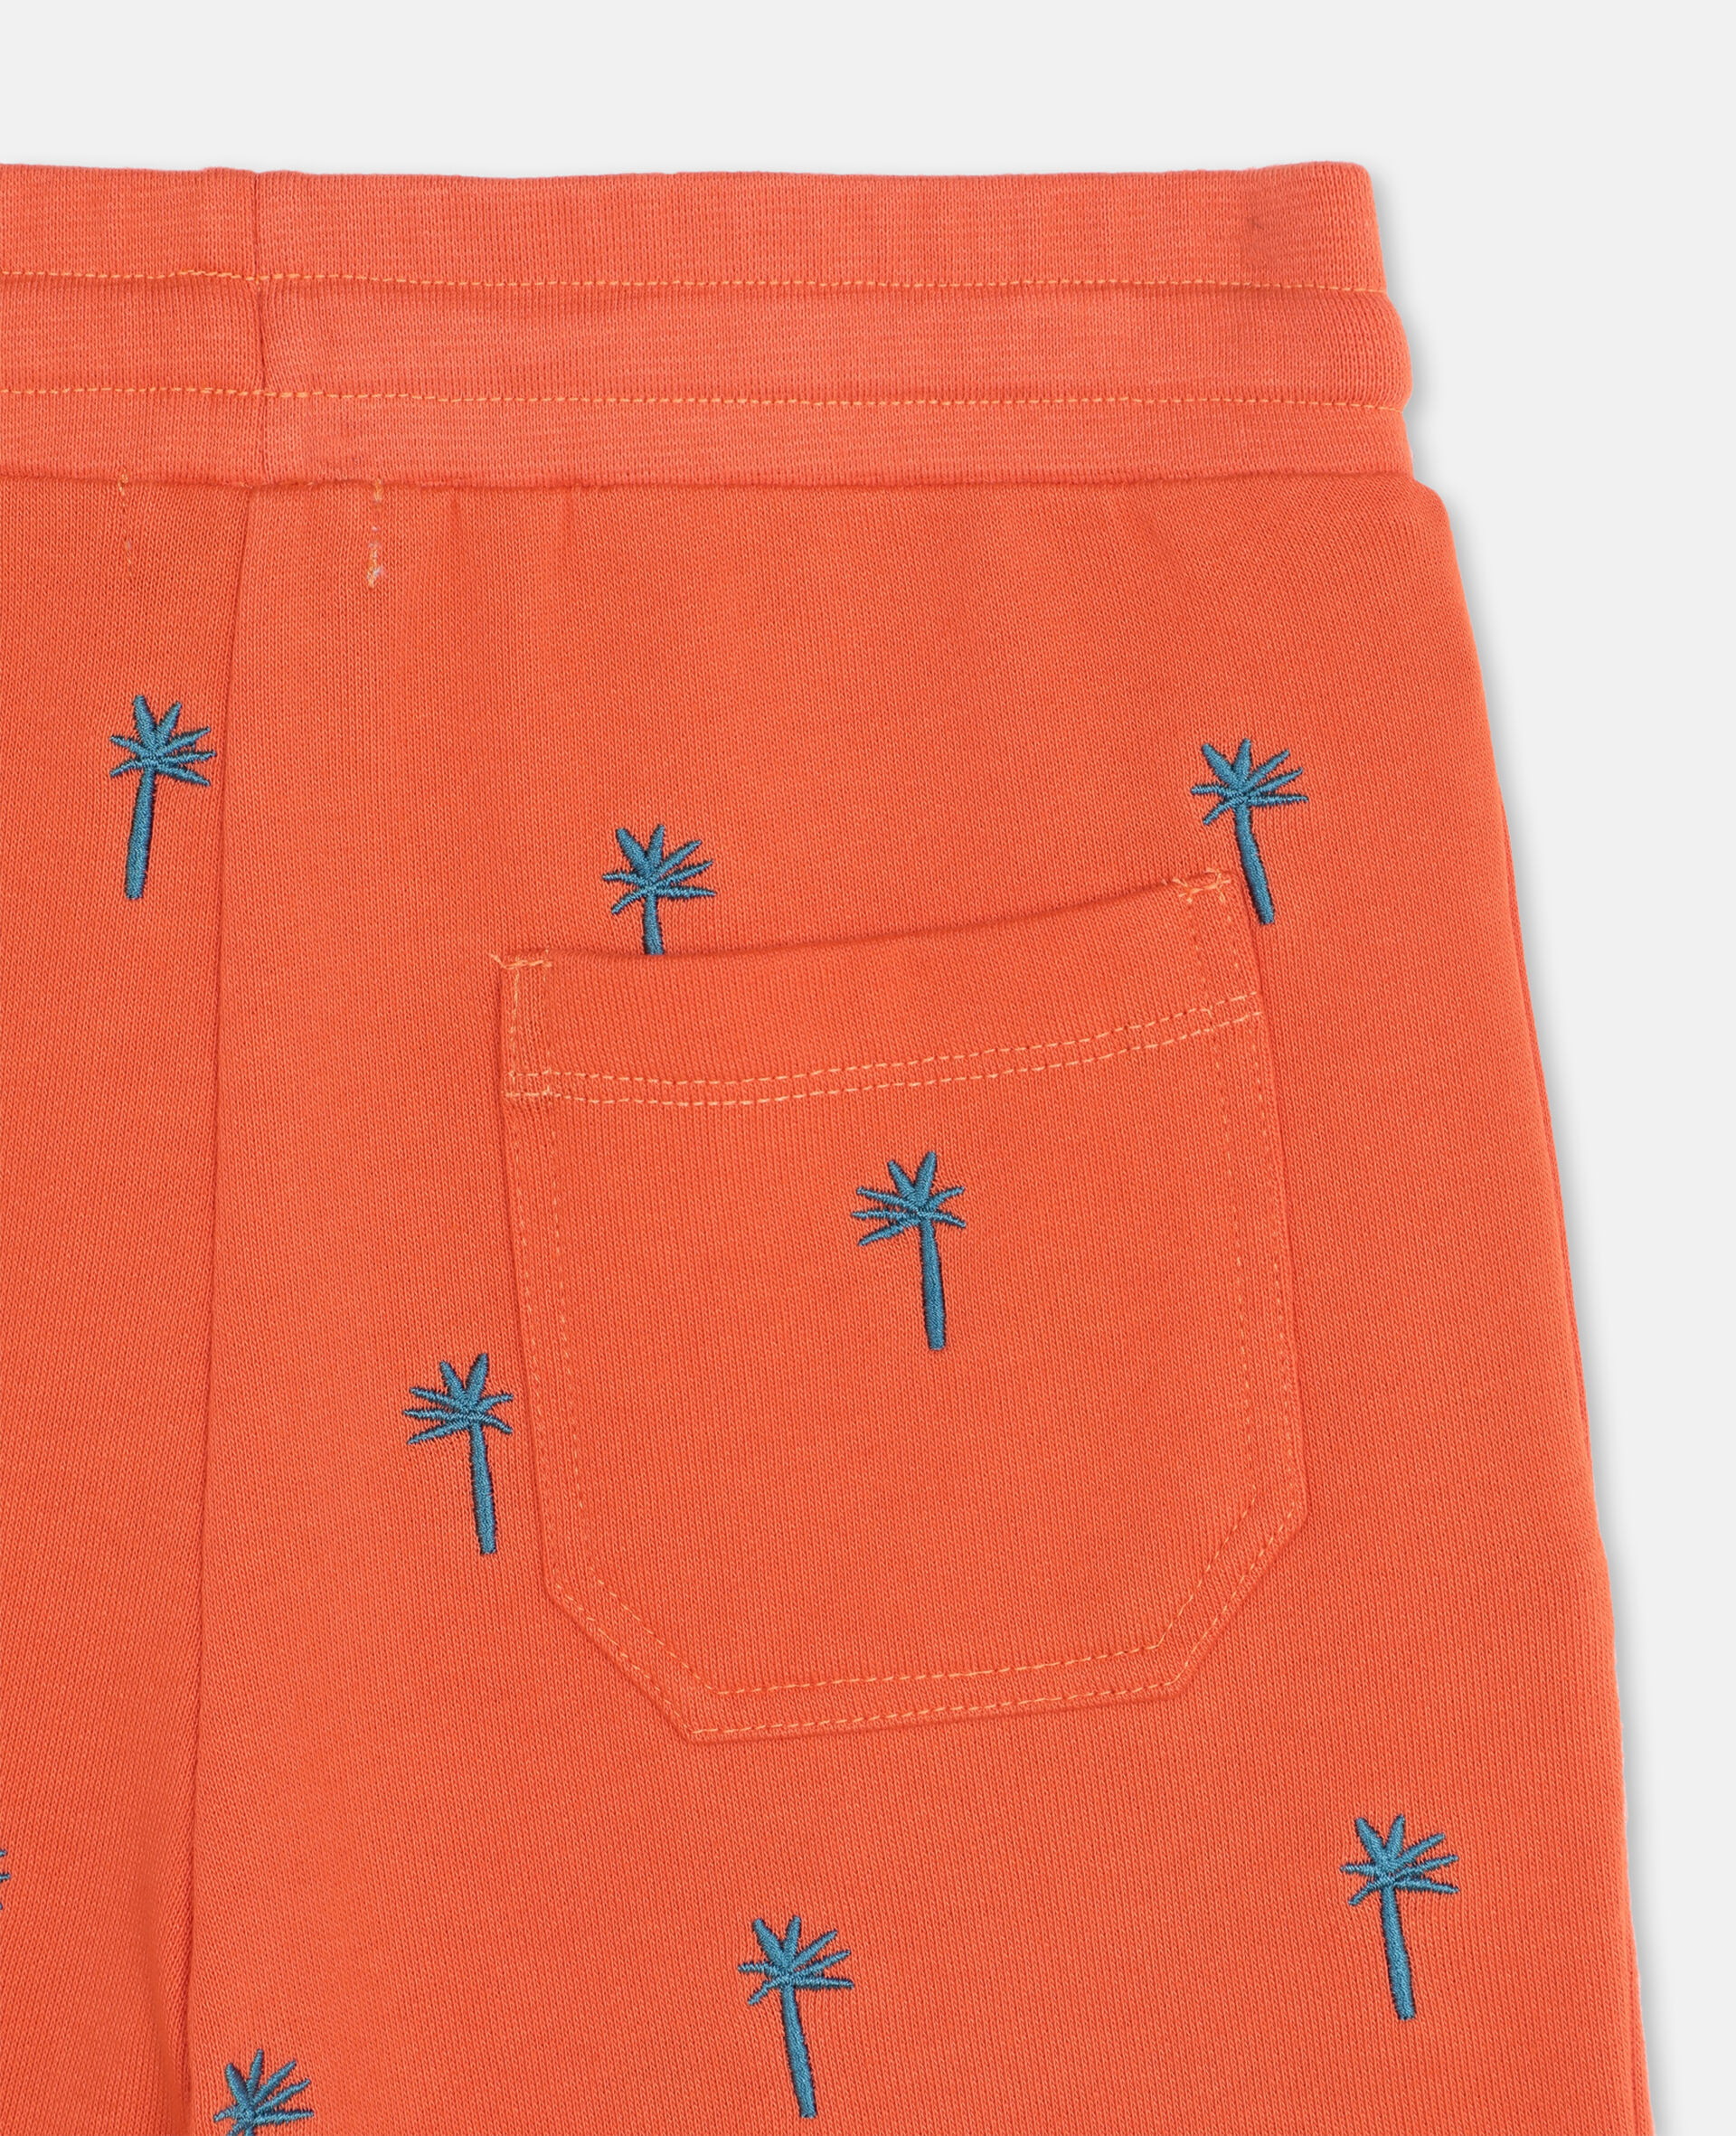 Embroidered Palm Cotton Shorts-Red-large image number 2